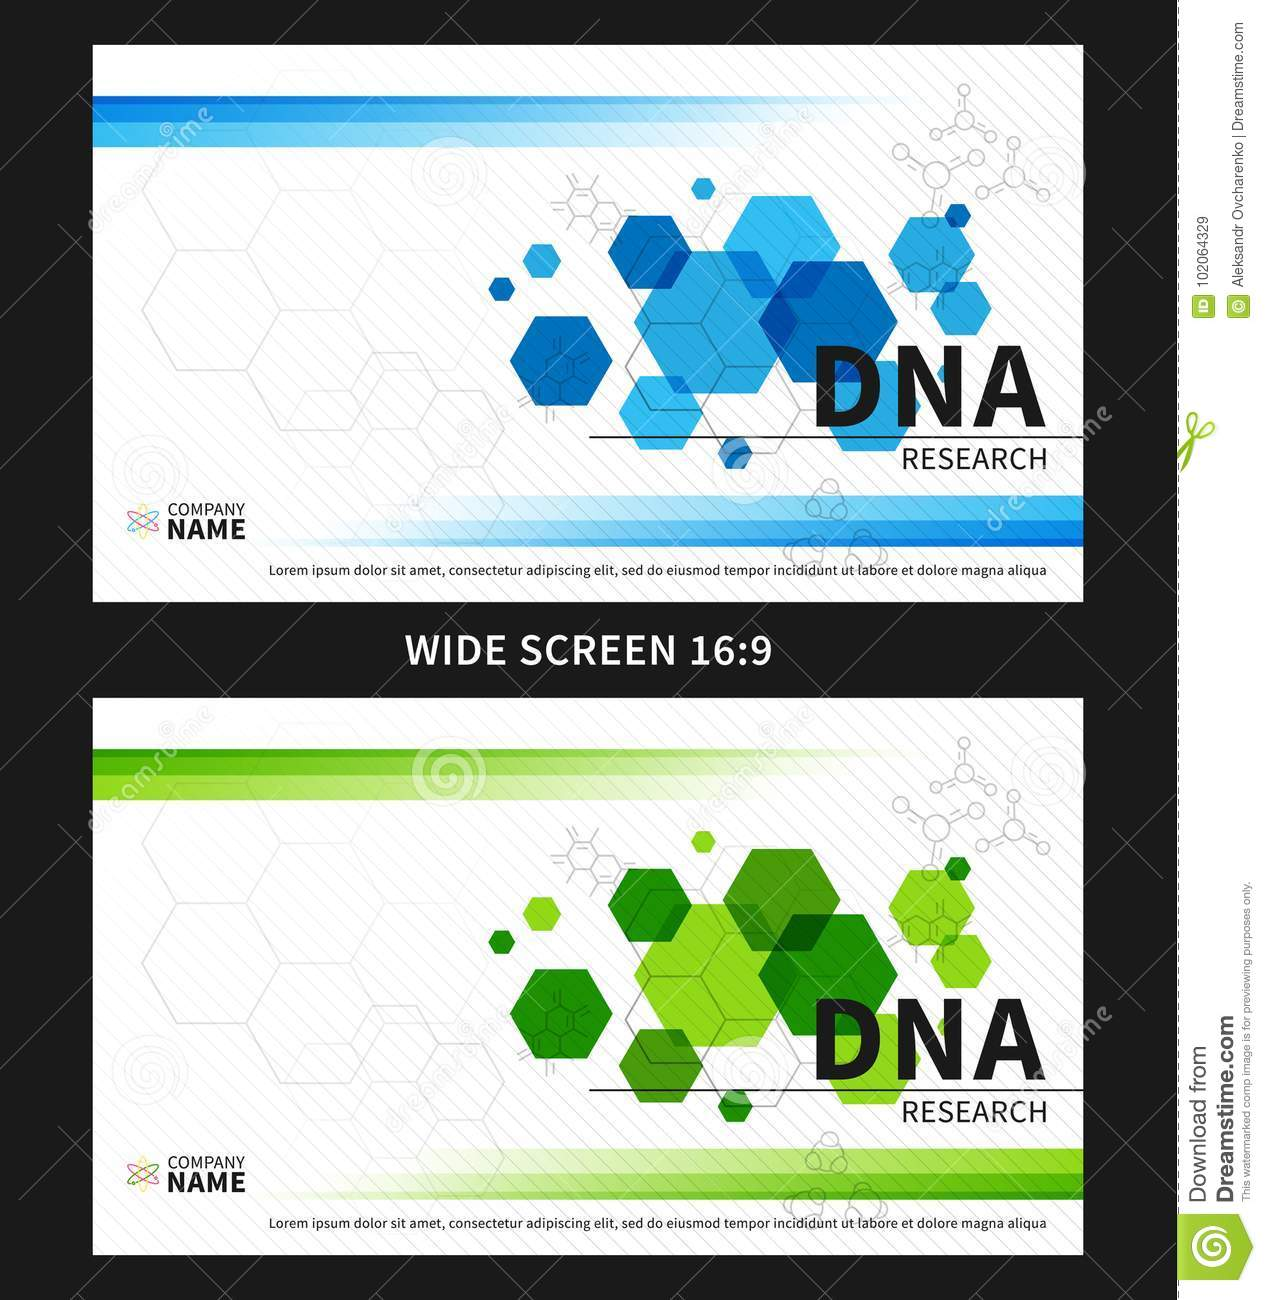 DNA Research Cover Vector Illustration Stock Vector - Illustration ...